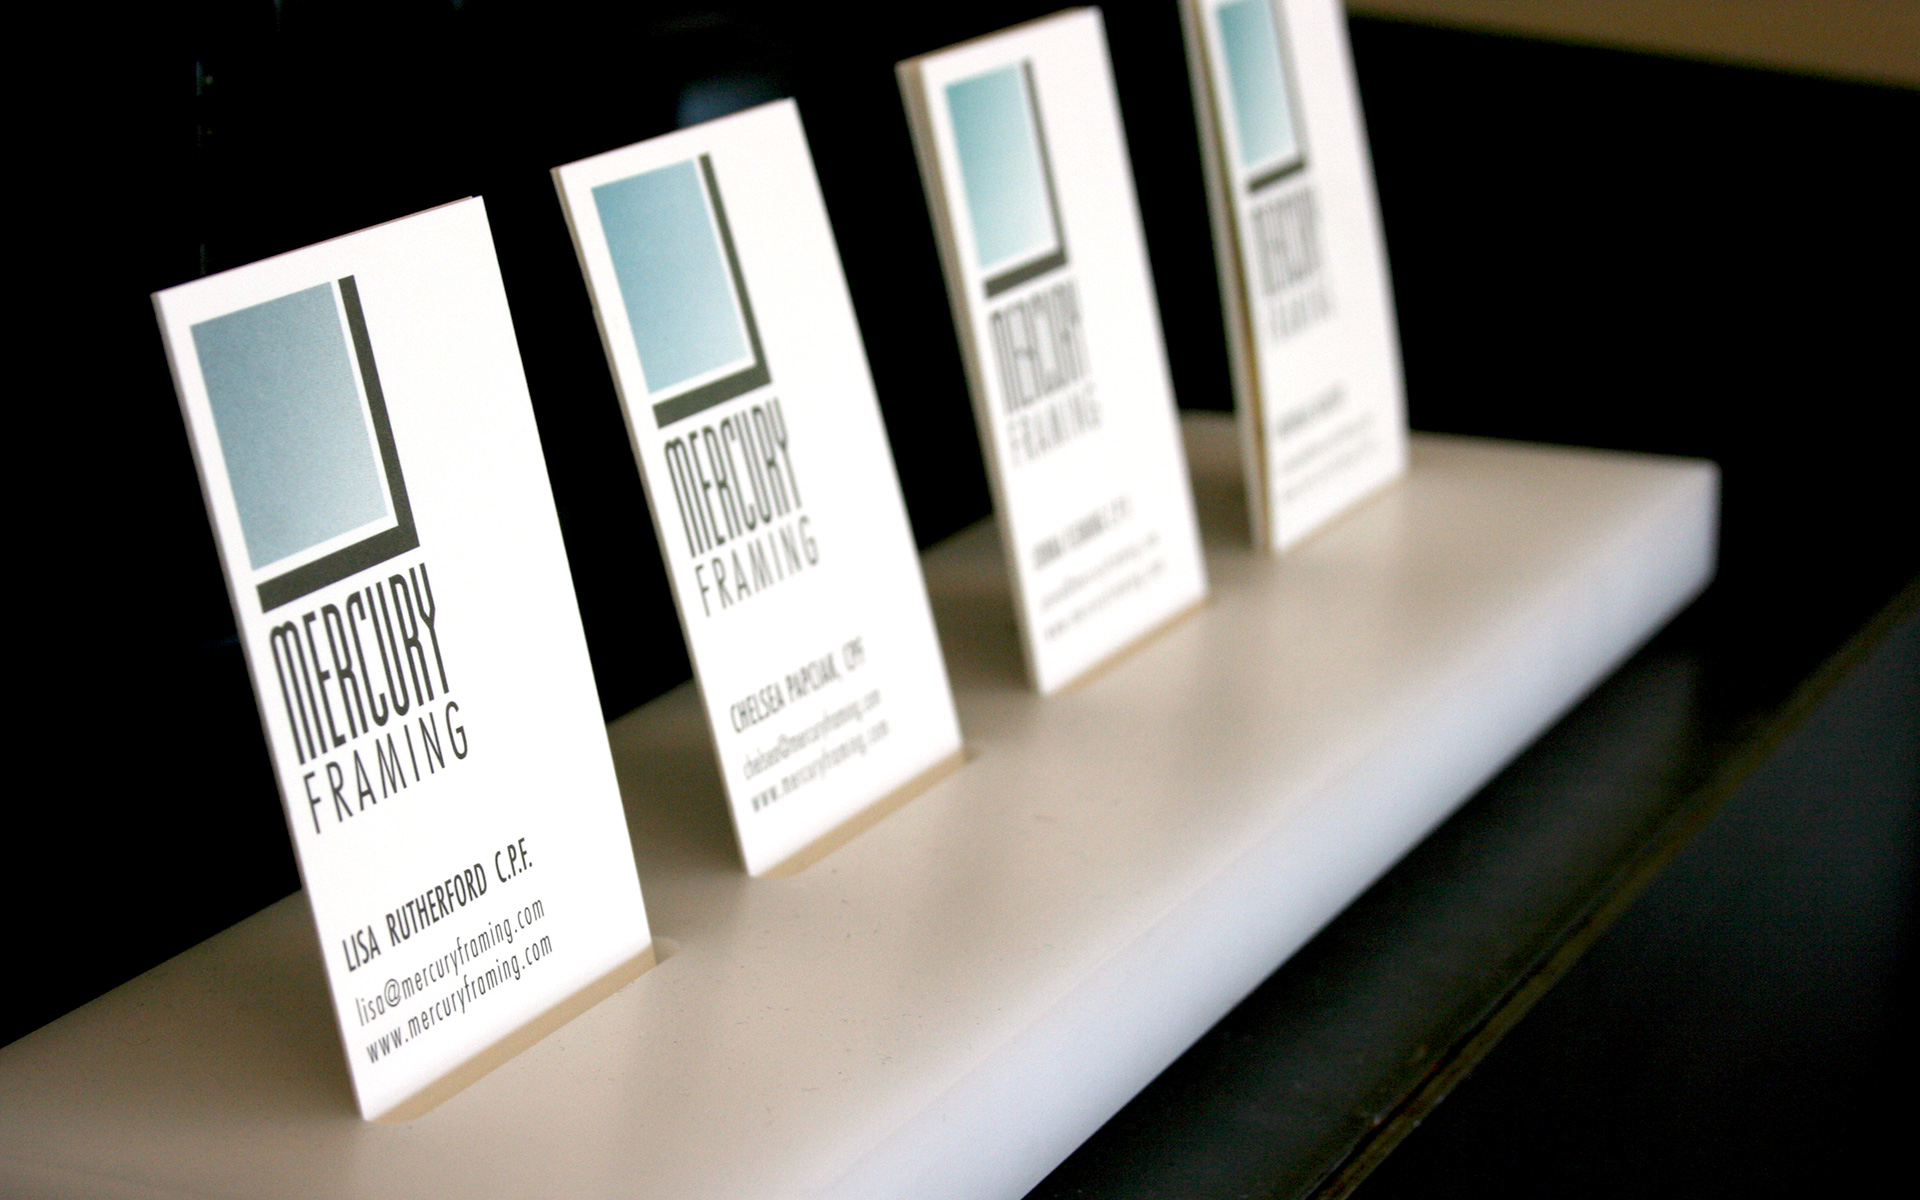 Mercury Framing Business Cards